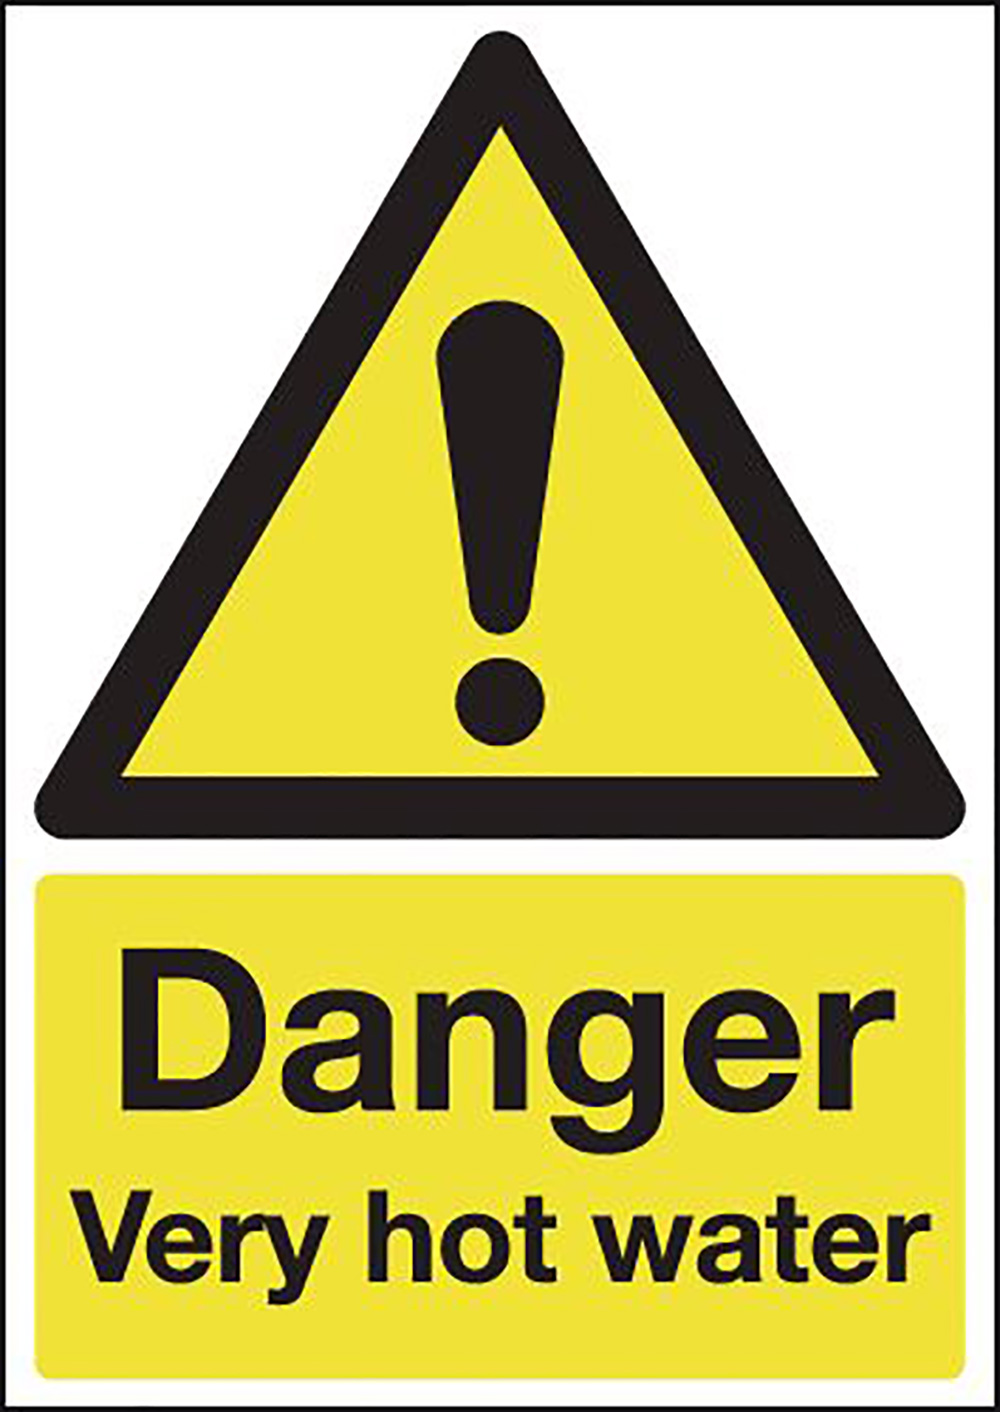 Danger Very Hot Water 210x148mm Self Adhesive Vinyl Safety Sign